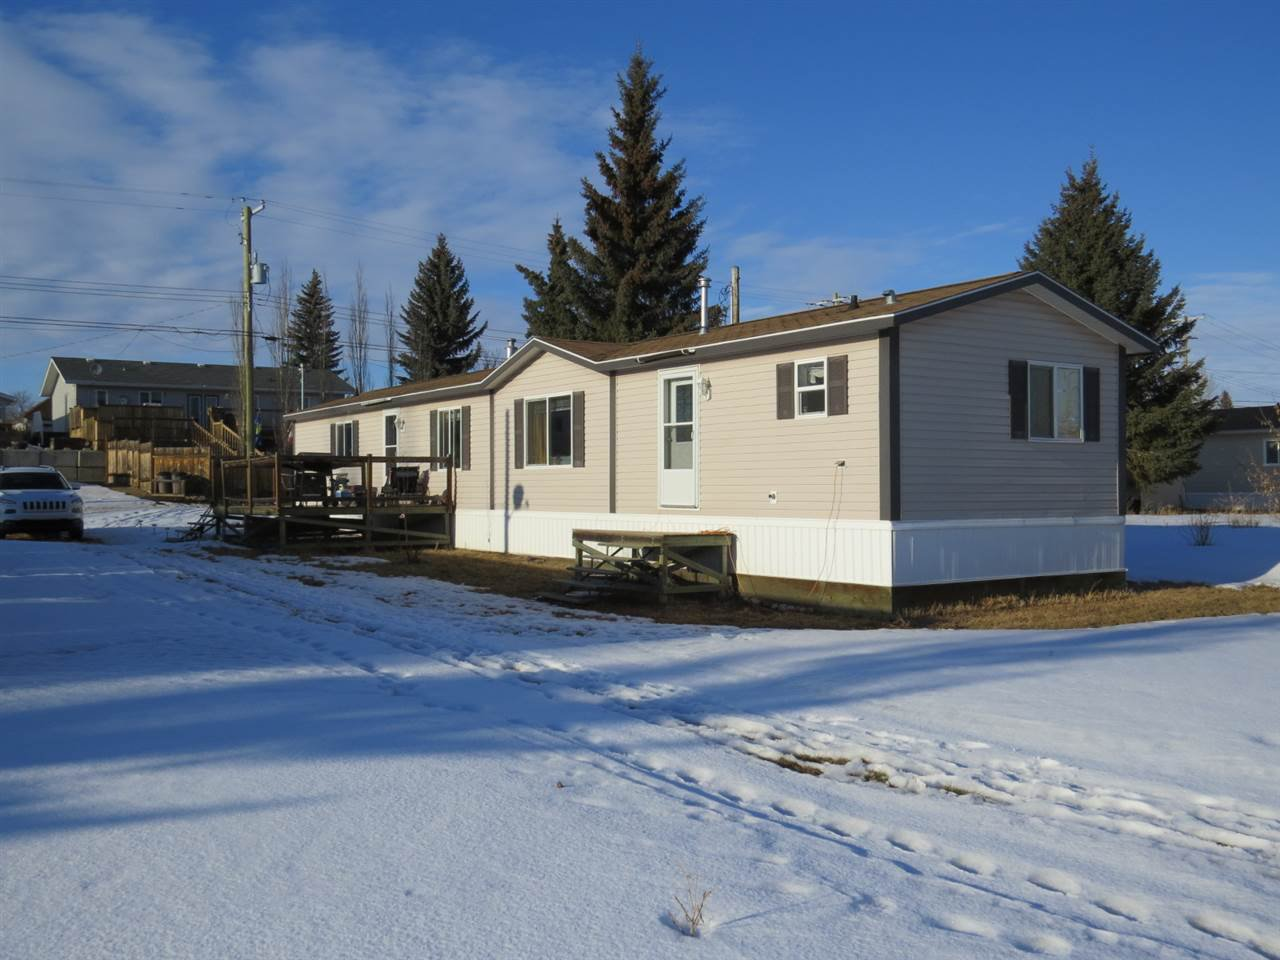 Main Photo: 5032 47 Street NW: Hardisty Manufactured Home for sale : MLS®# E4191489